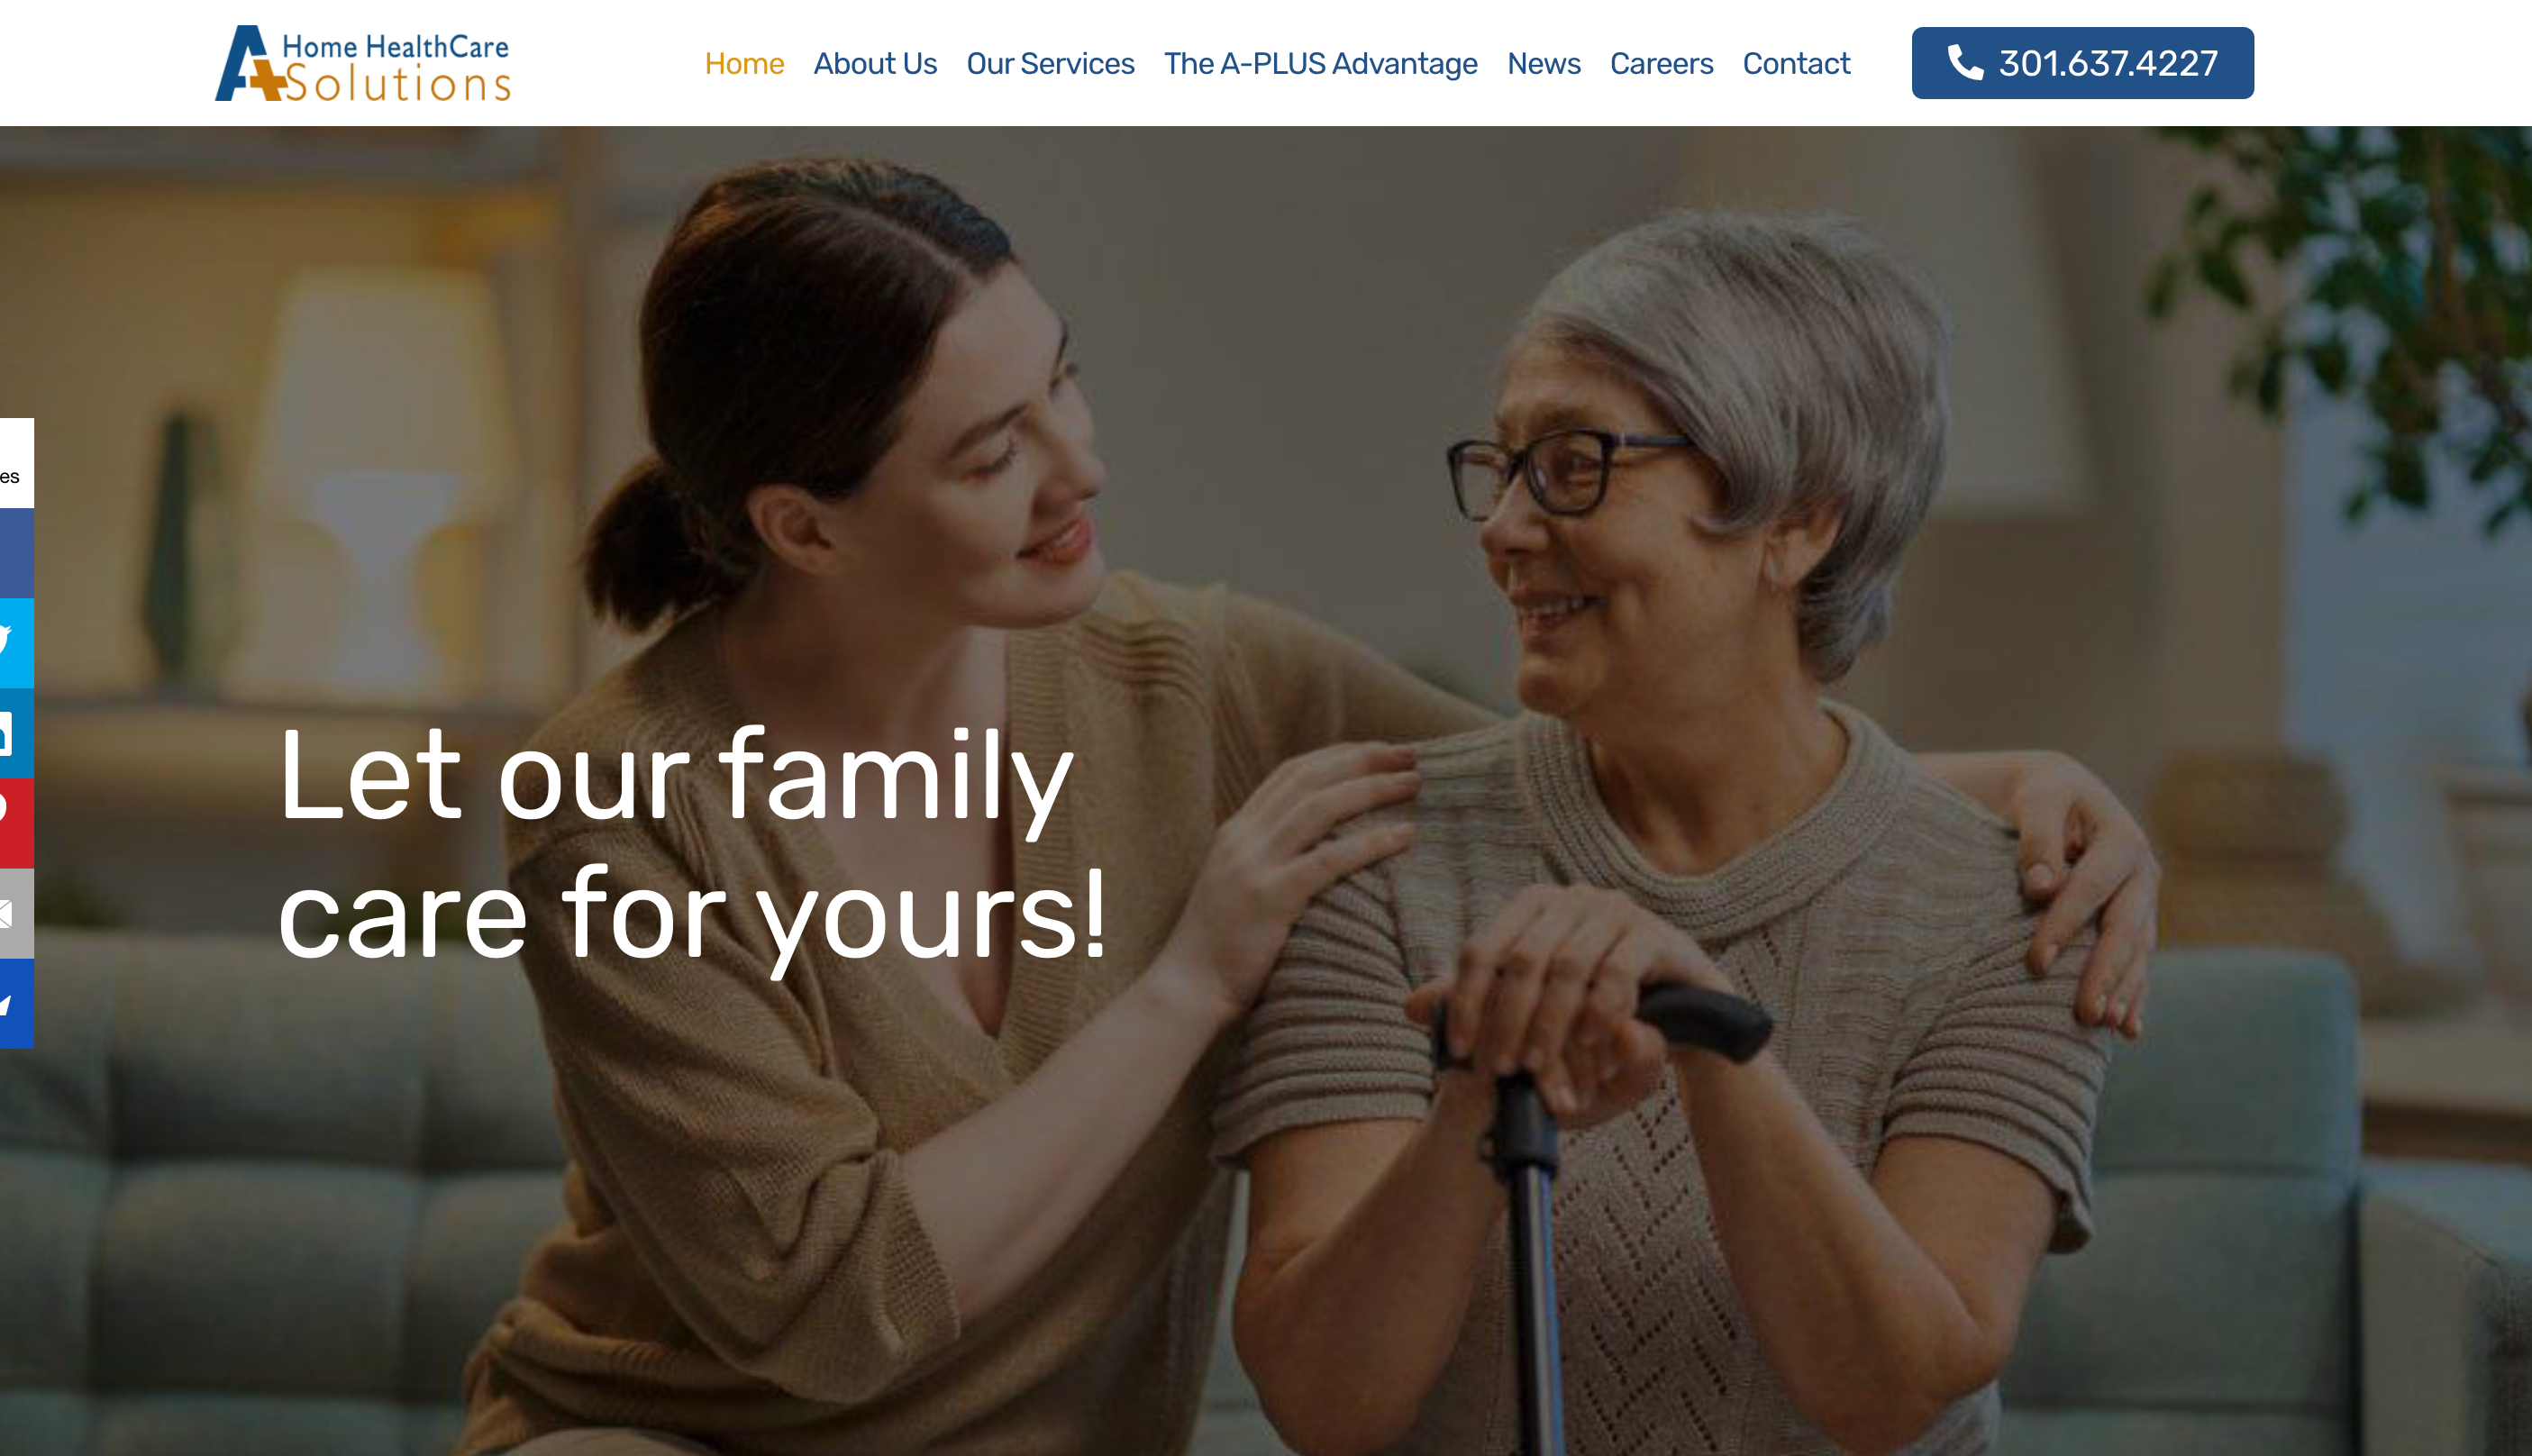 A-PLUS Home Healthcare Solutions